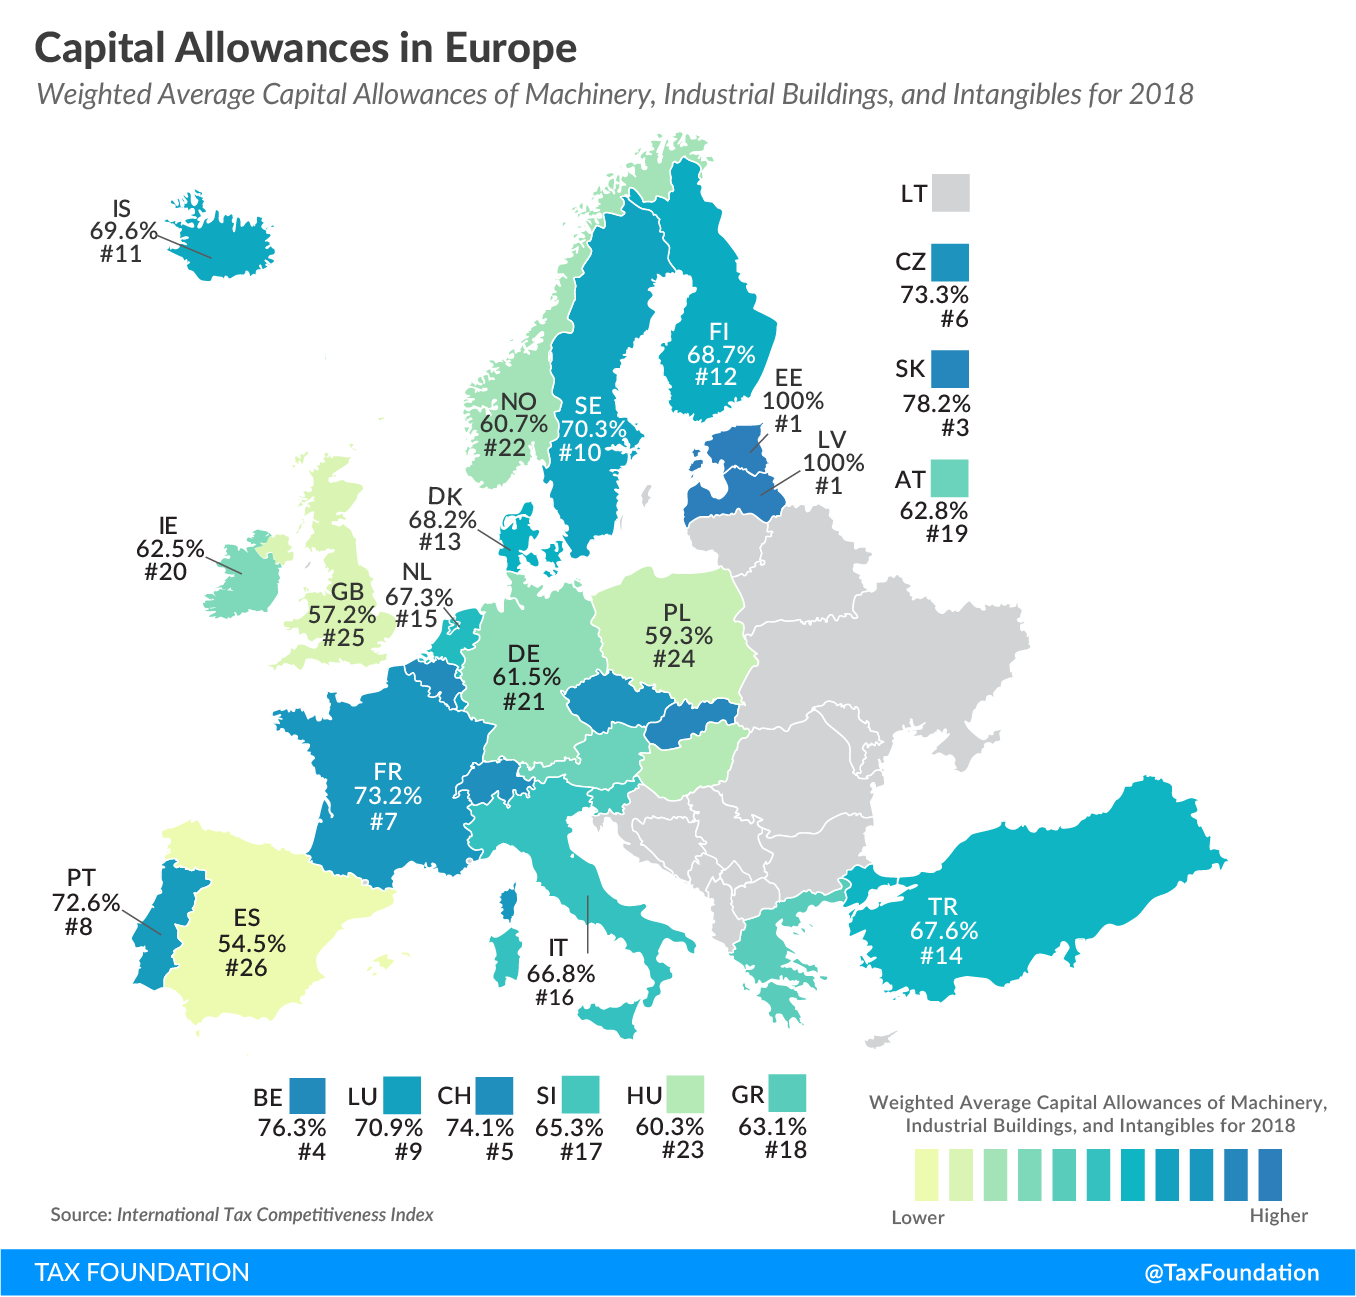 Capital Allowances in Europe